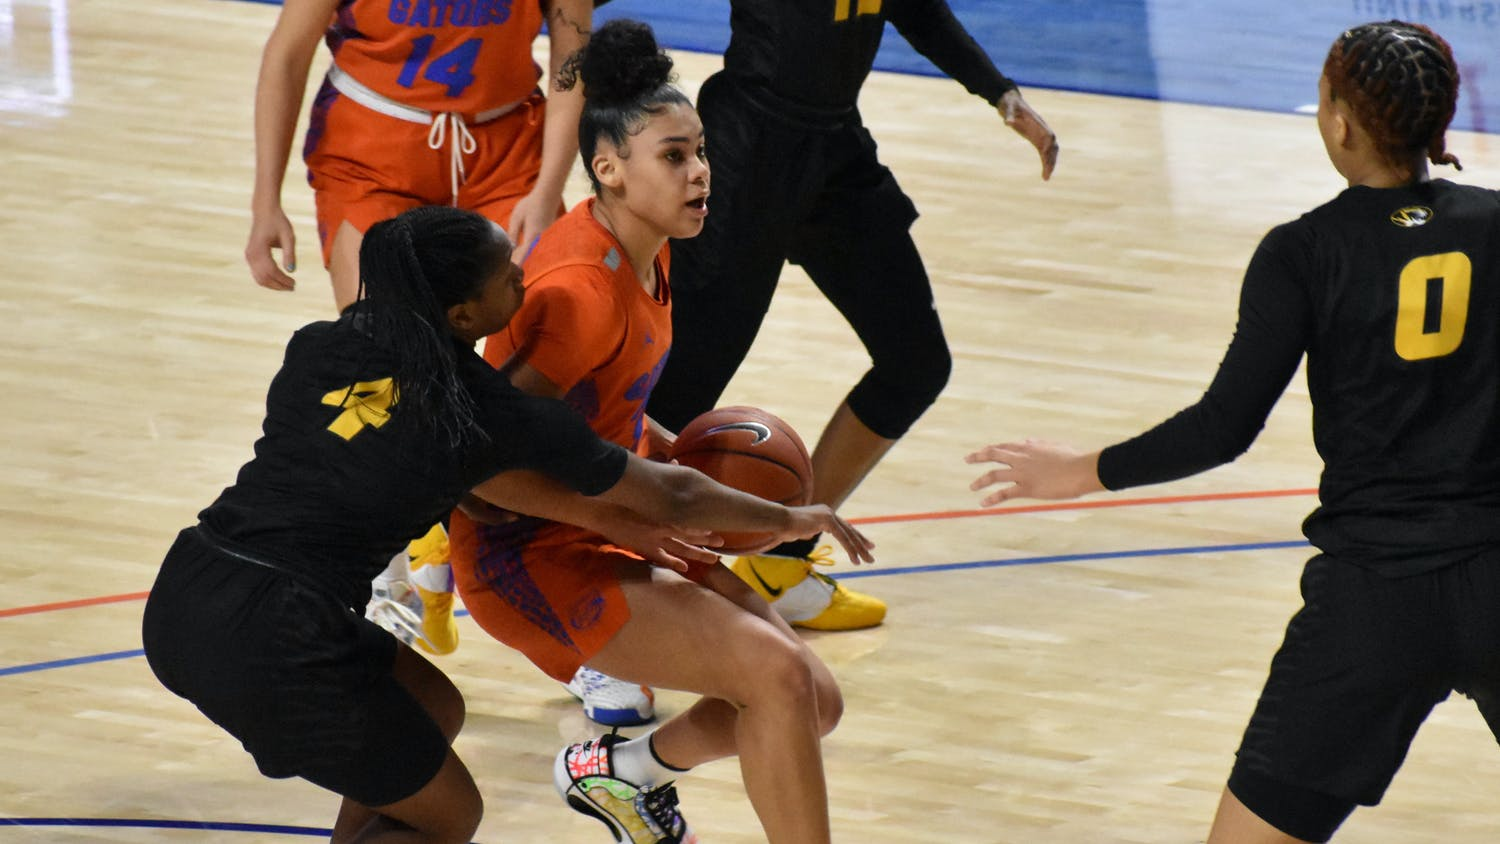 Relying on two stars guards (Lavender Briggs and Kiara Smith) to shoot more than 70% of Florida's points, like during the Arkansas game, isn't sustainable. Photo from UF-Mizzou game January 2021.